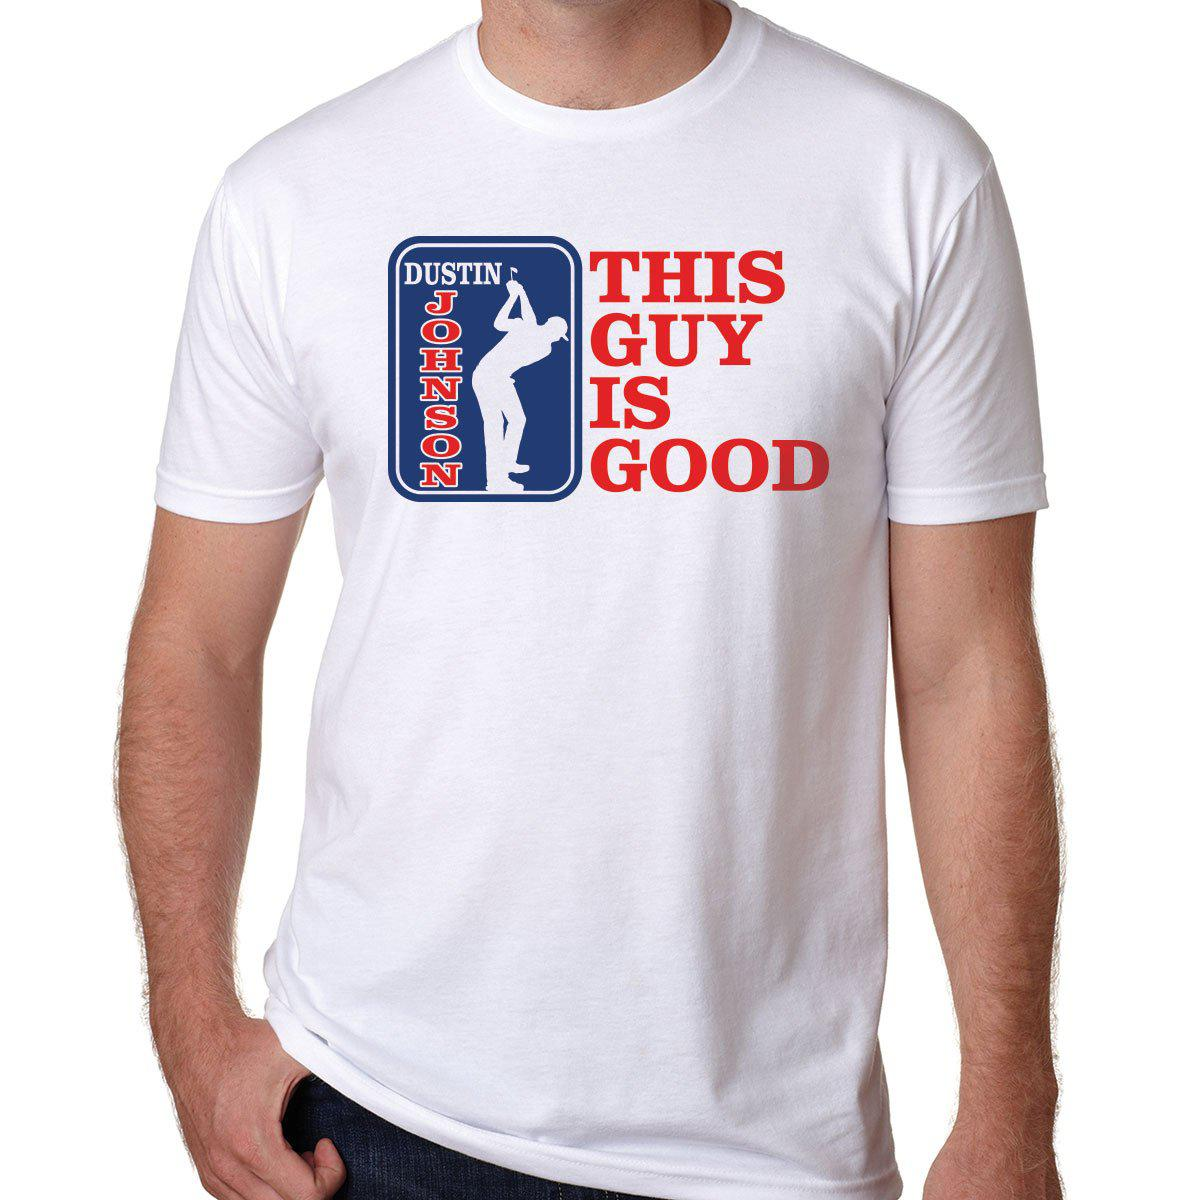 Dustin Johnson - This Guy Is Good